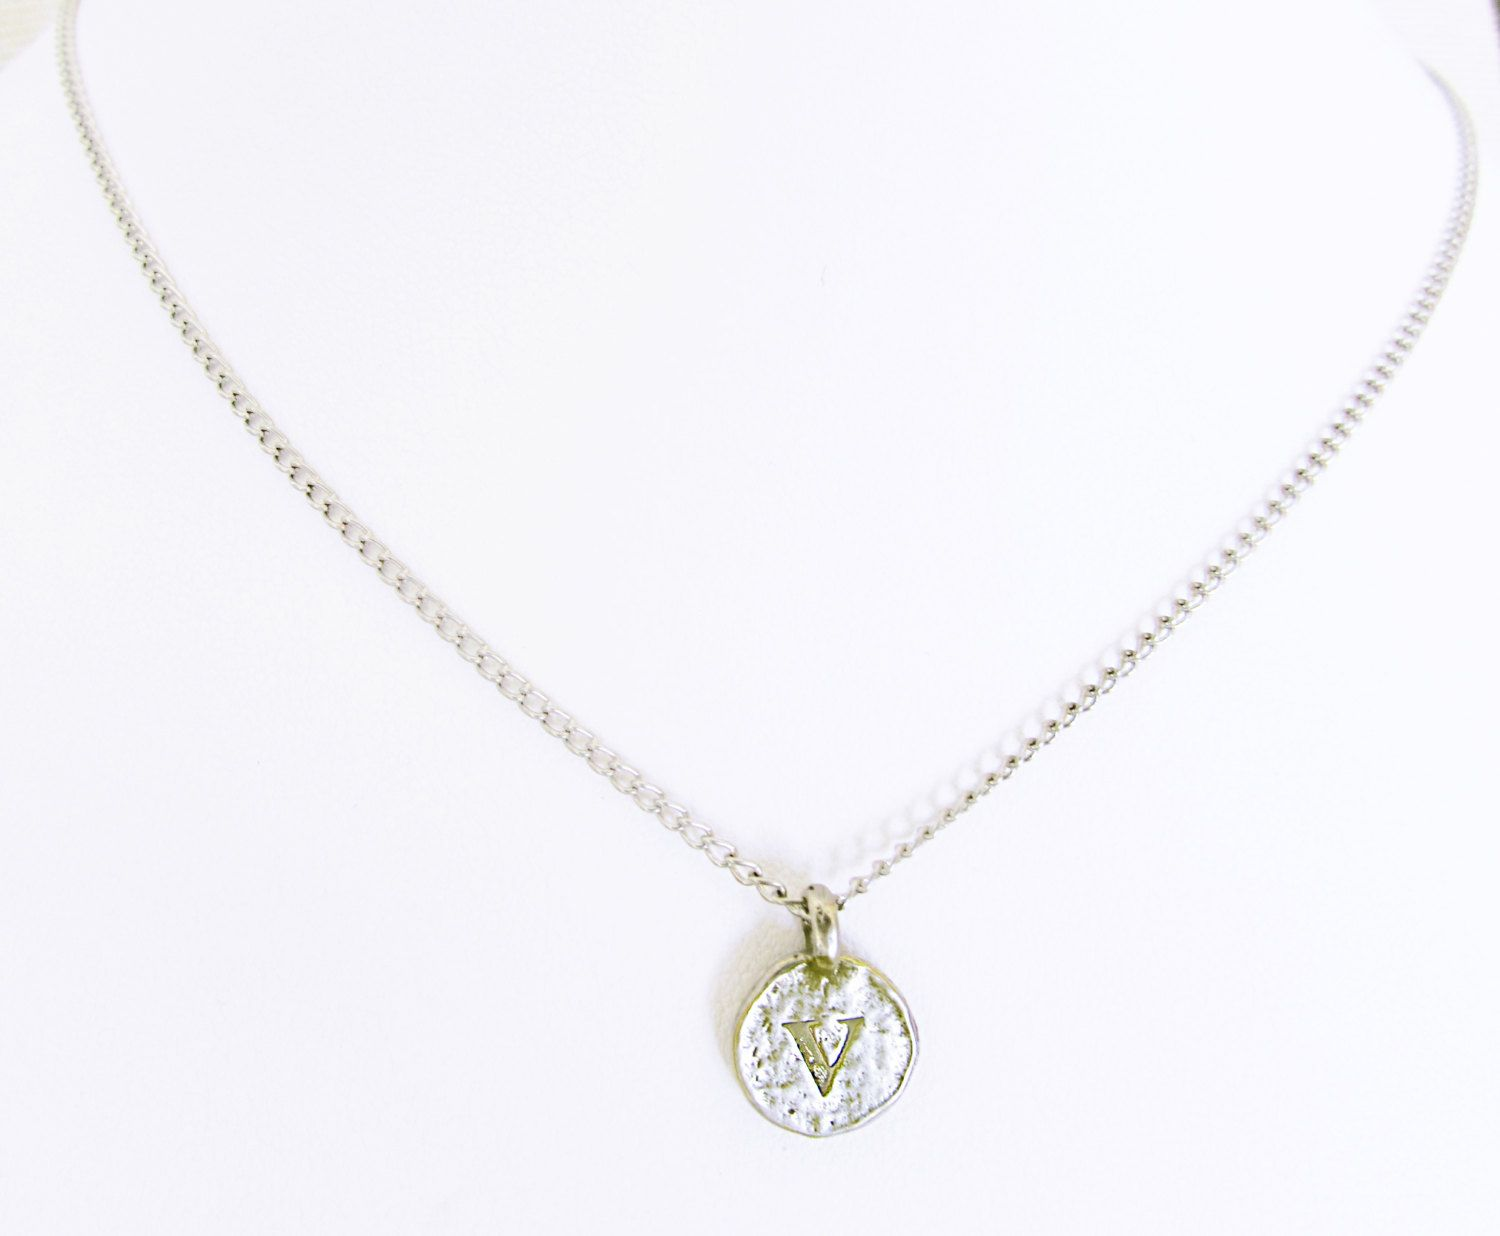 fb78a8101ecda Sterling silver V pendant necklace gift, personalized girlfriend ...